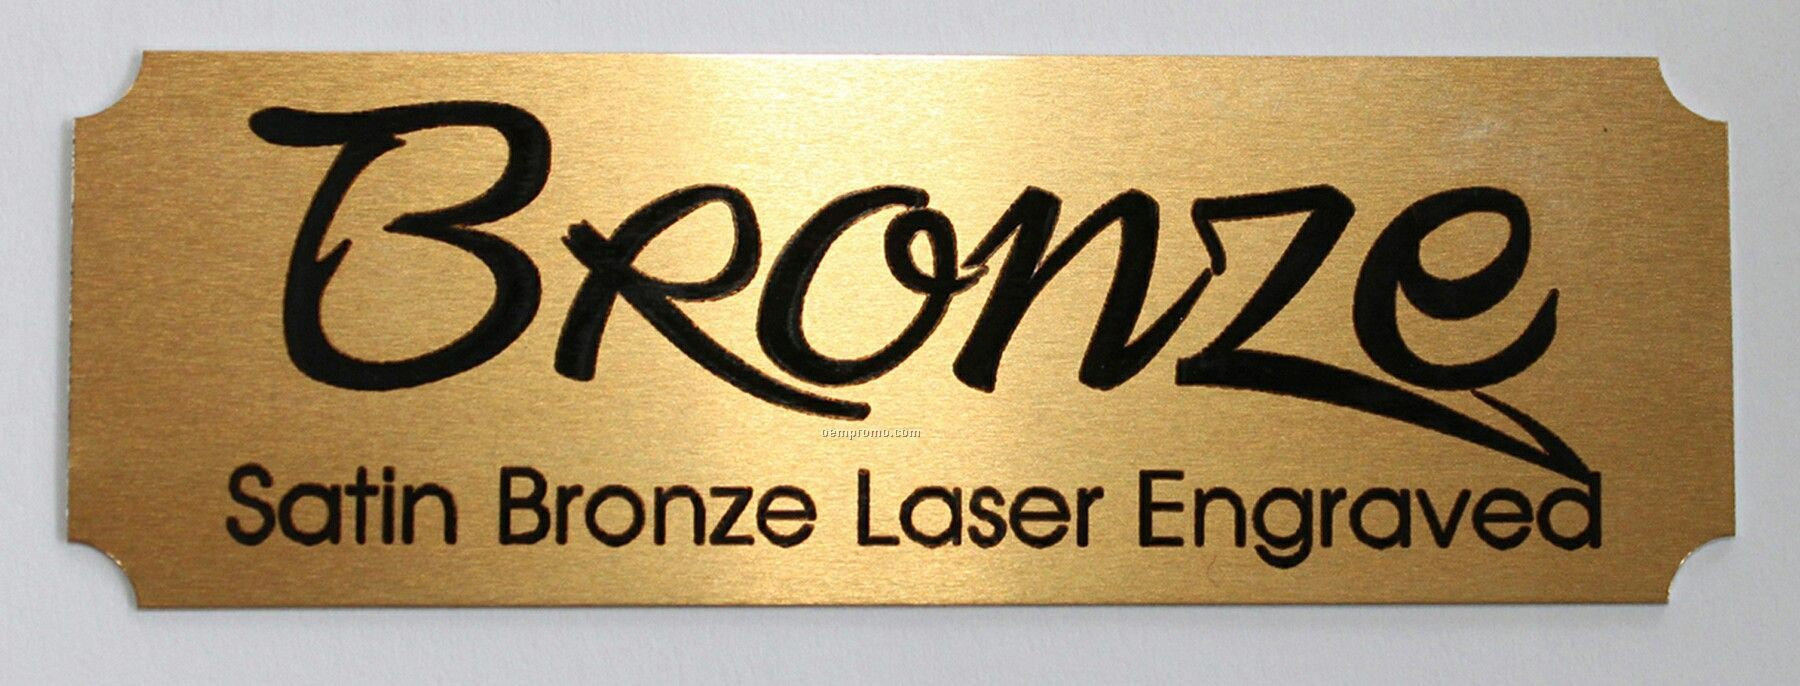 Laser Engraved Satin Bronze Name Plate 3 W X 1 HChina